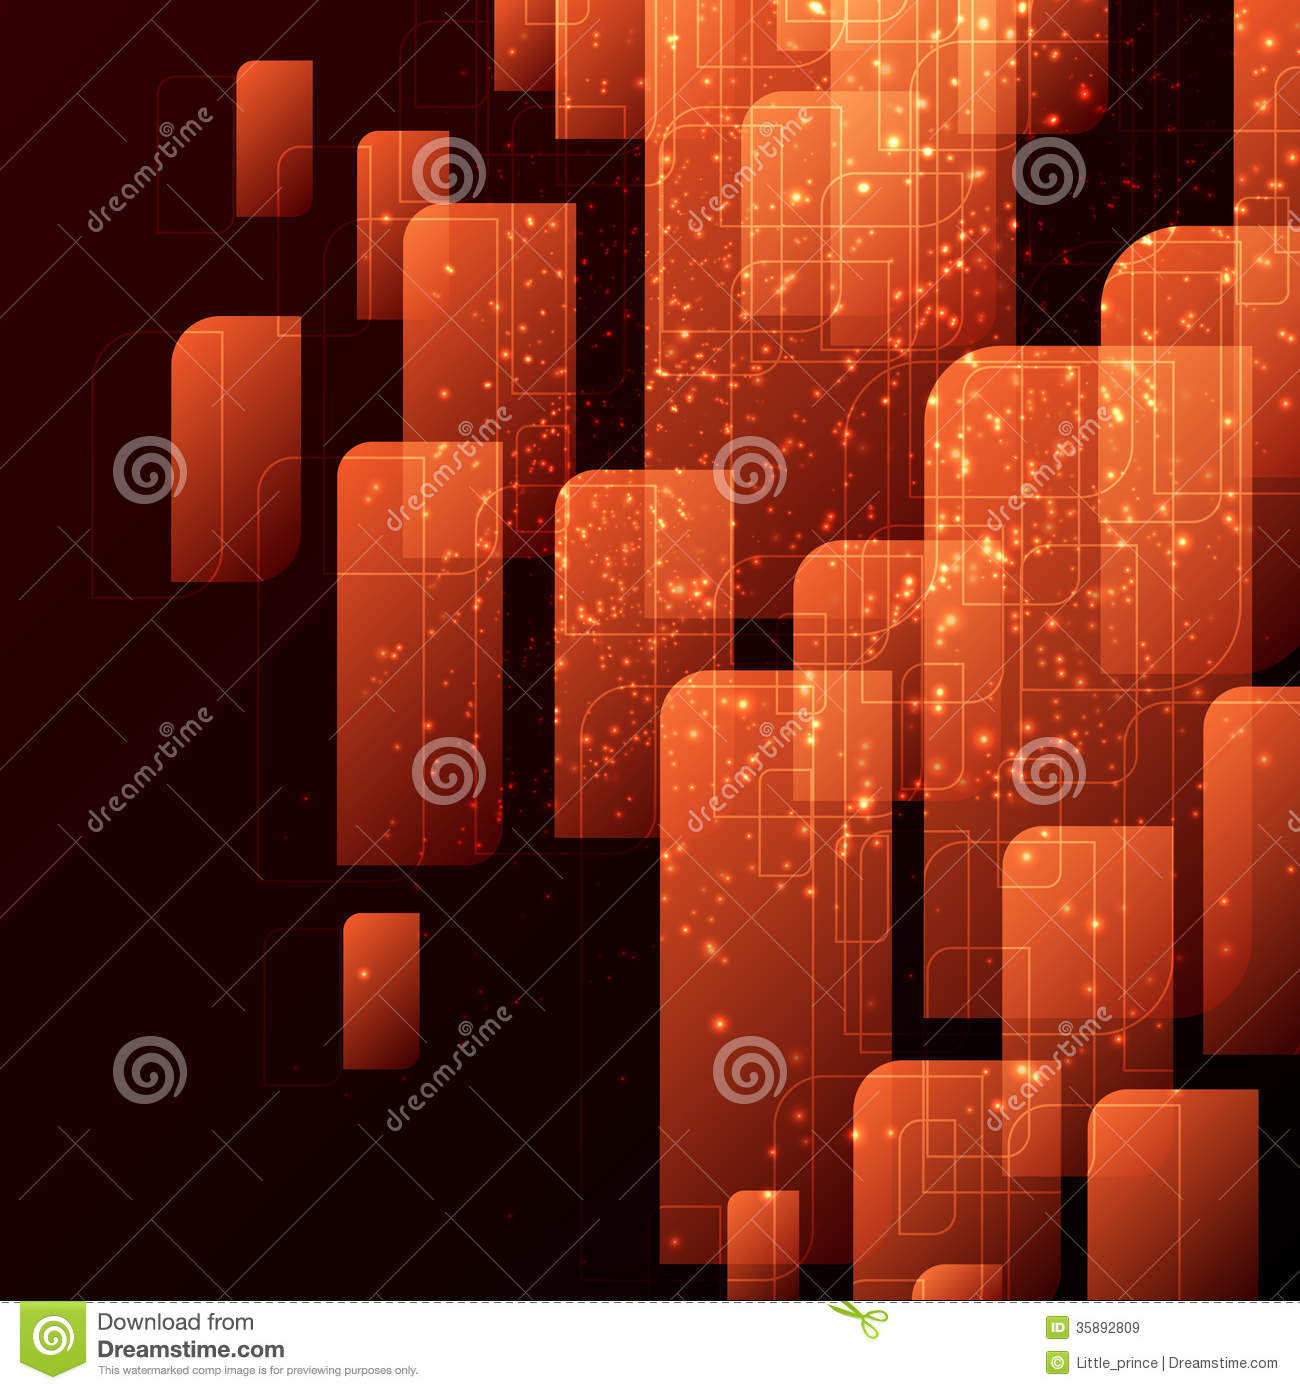 Orange and black techno abstract background